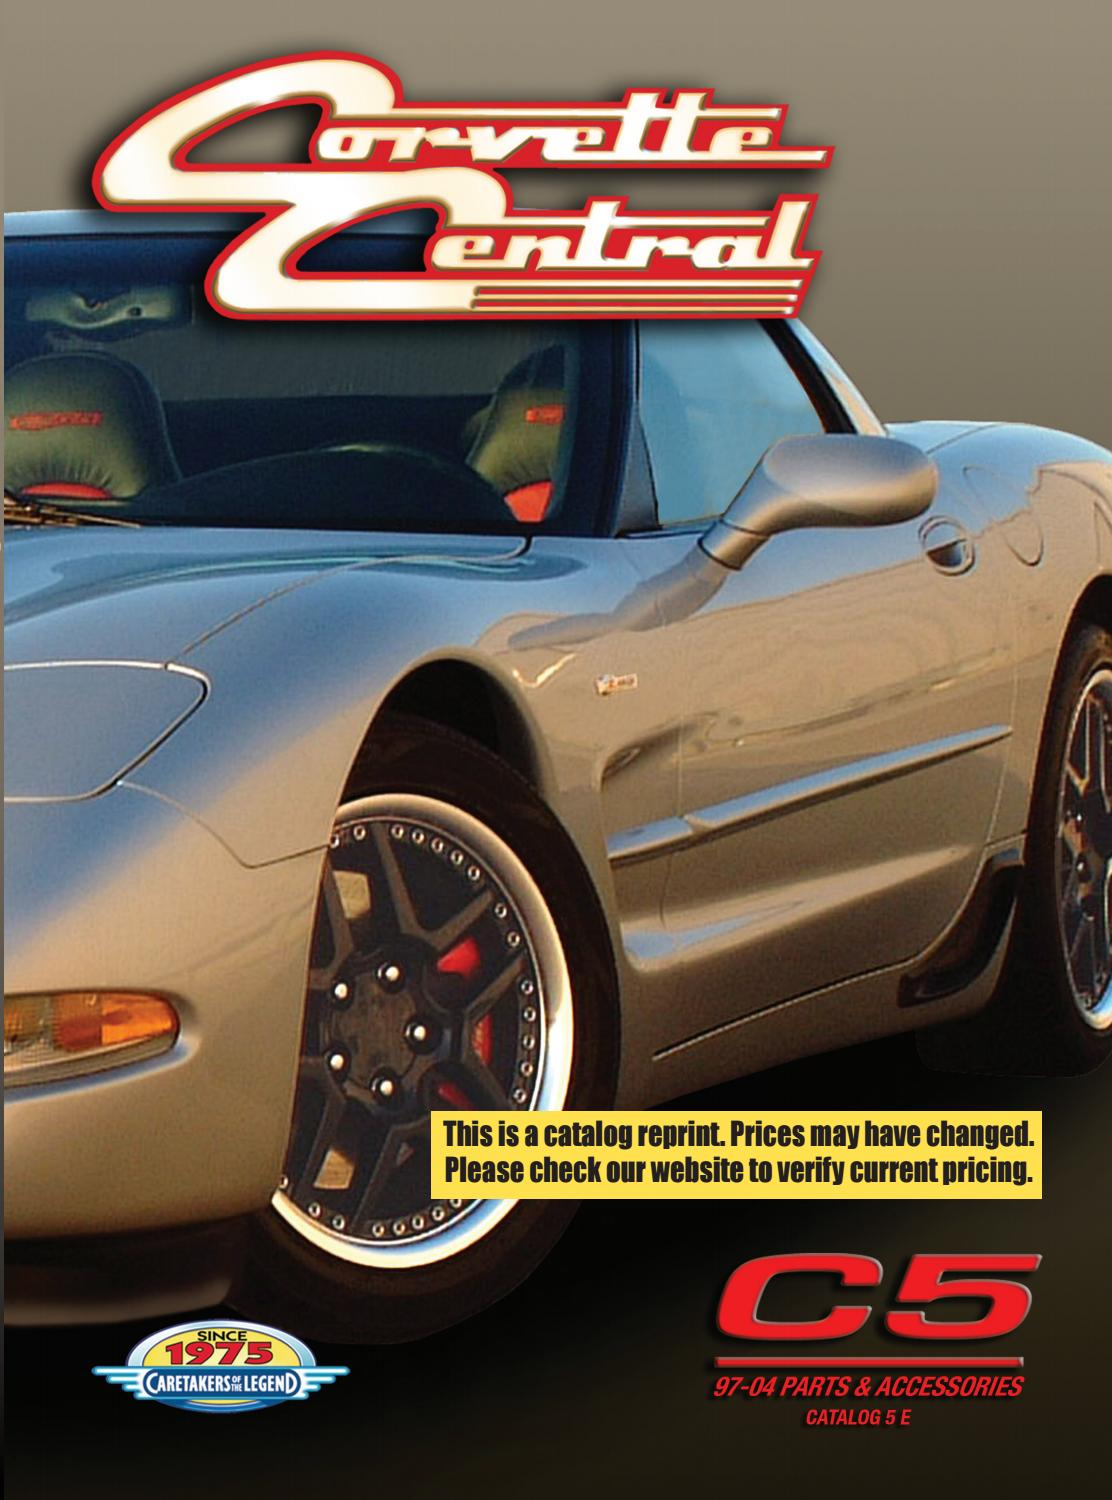 c5 corvette electric fan relay wiring diagram corvette central c5  97 04  corvette parts catalog by corvette  corvette parts catalog by corvette